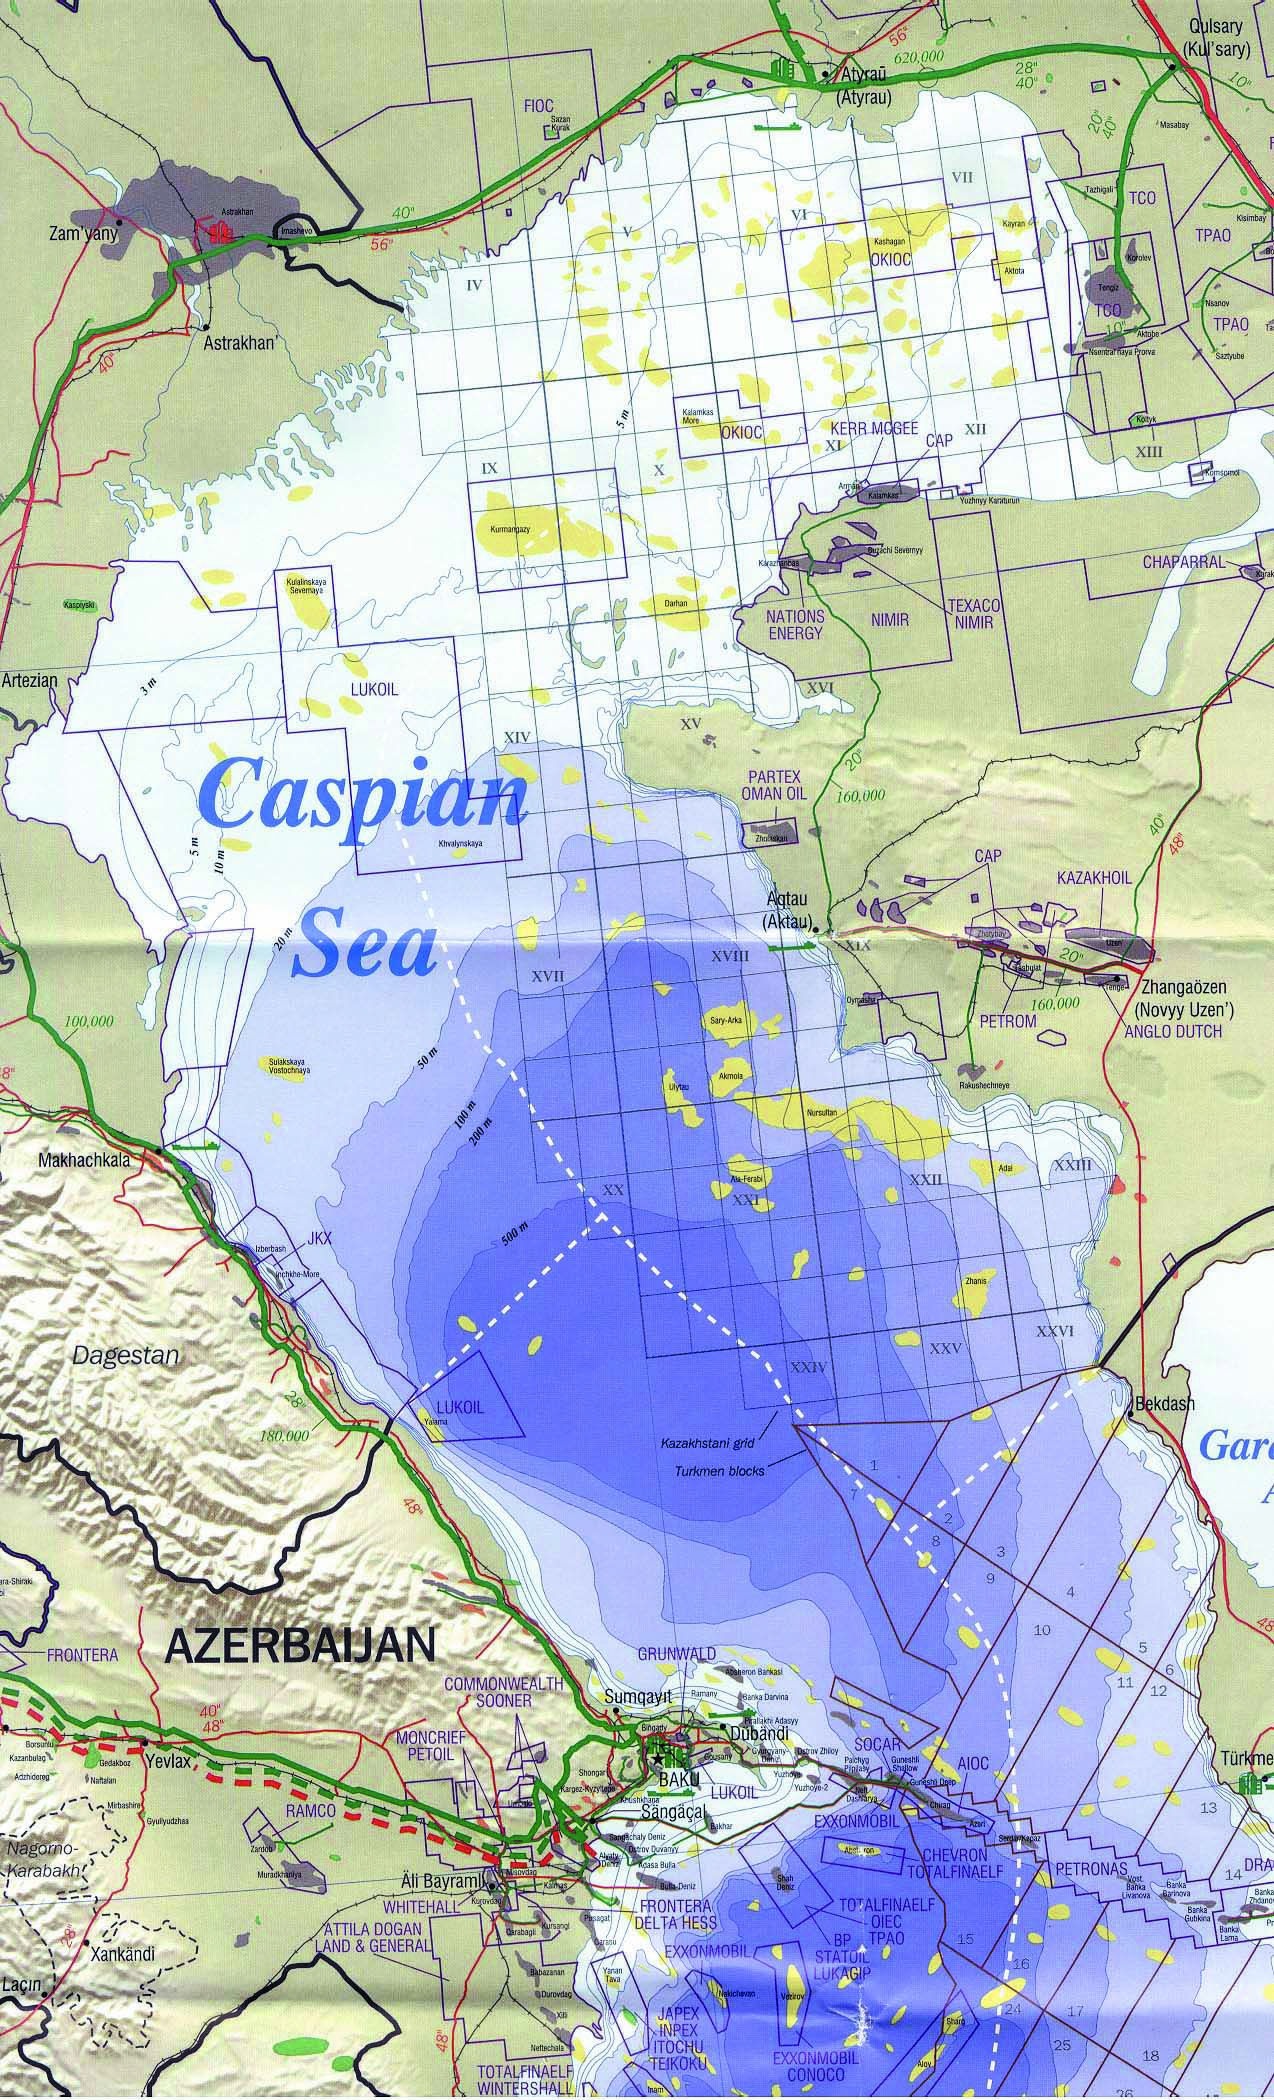 The Caspian Sea | Future earth, World geography, Map